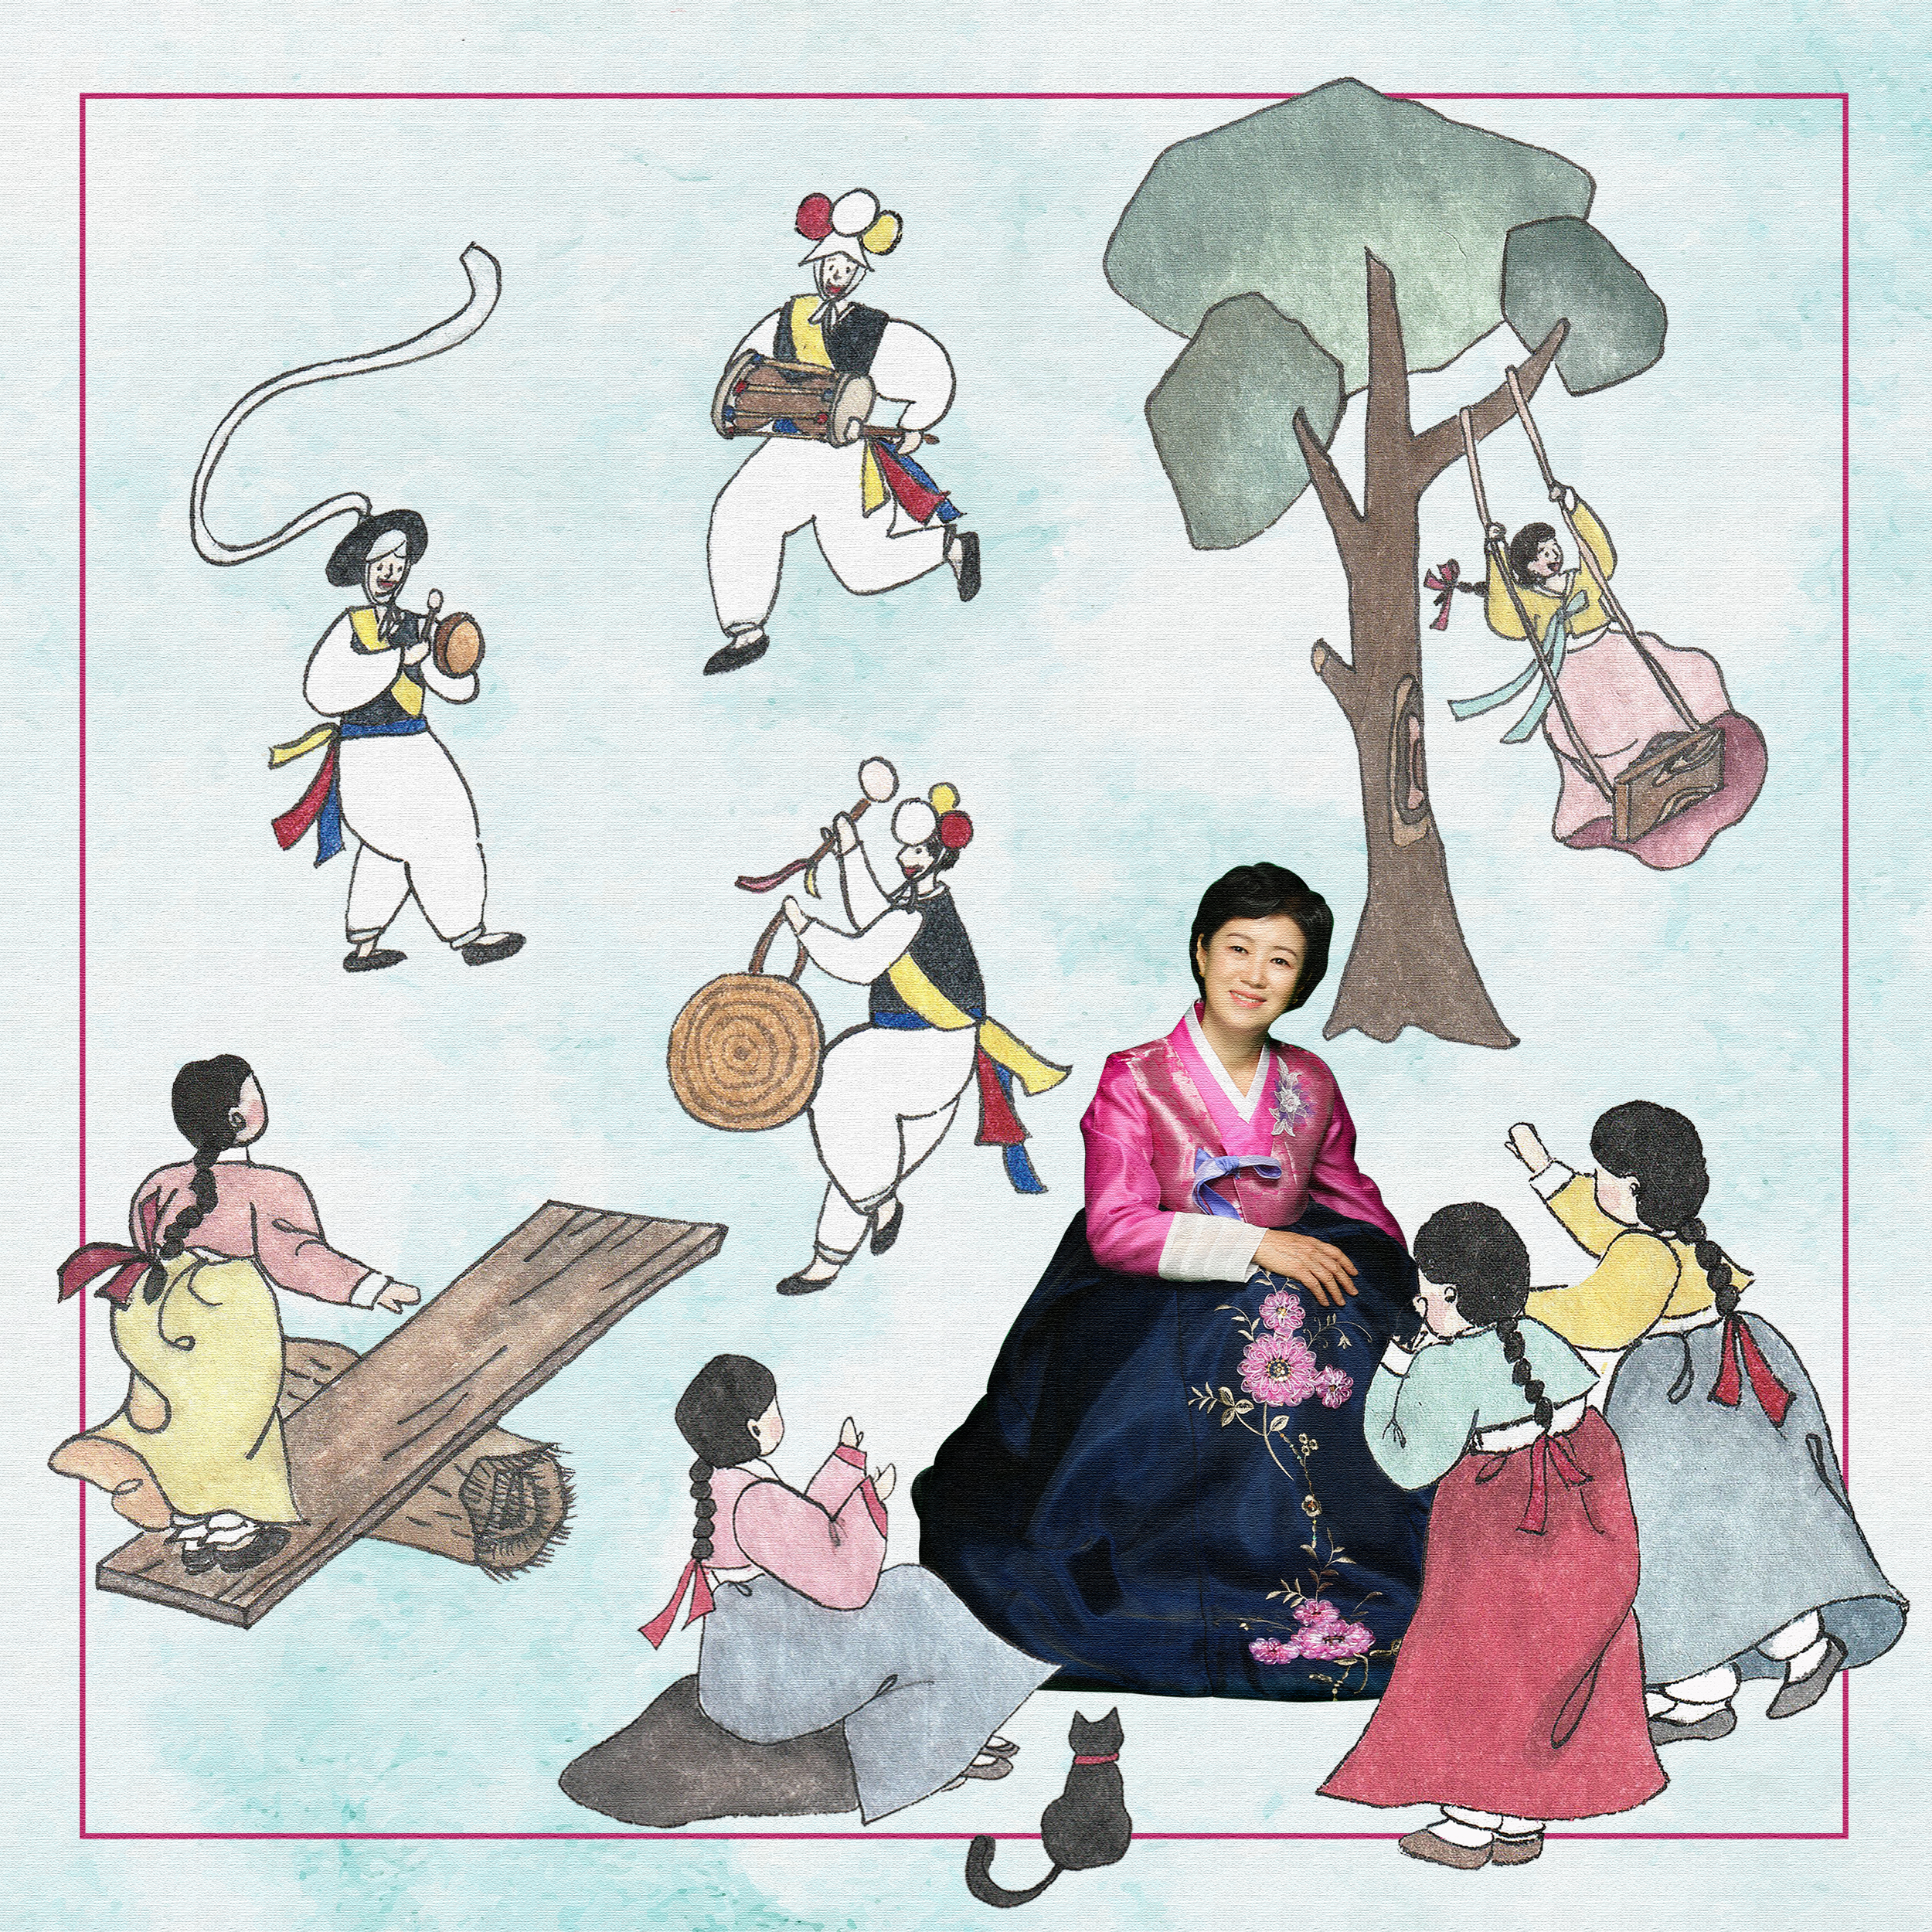 Heejeong sits wearing a traditional Korean dress. She is surrounded by illustrations of 8 people in traditional Korean clothes playing games and music.